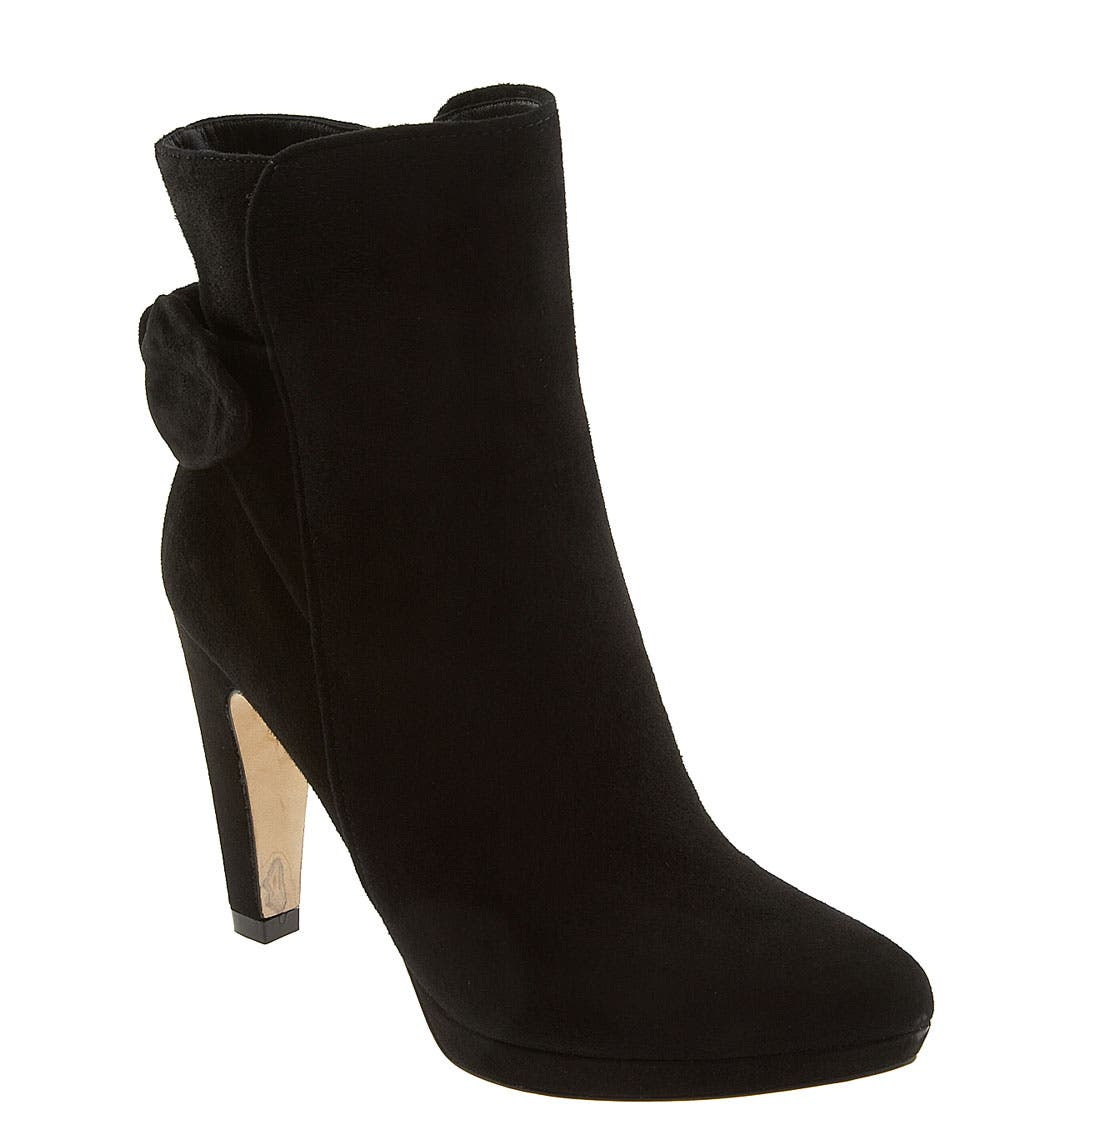 'Bernisa' Ankle Boot, Main, color, 001